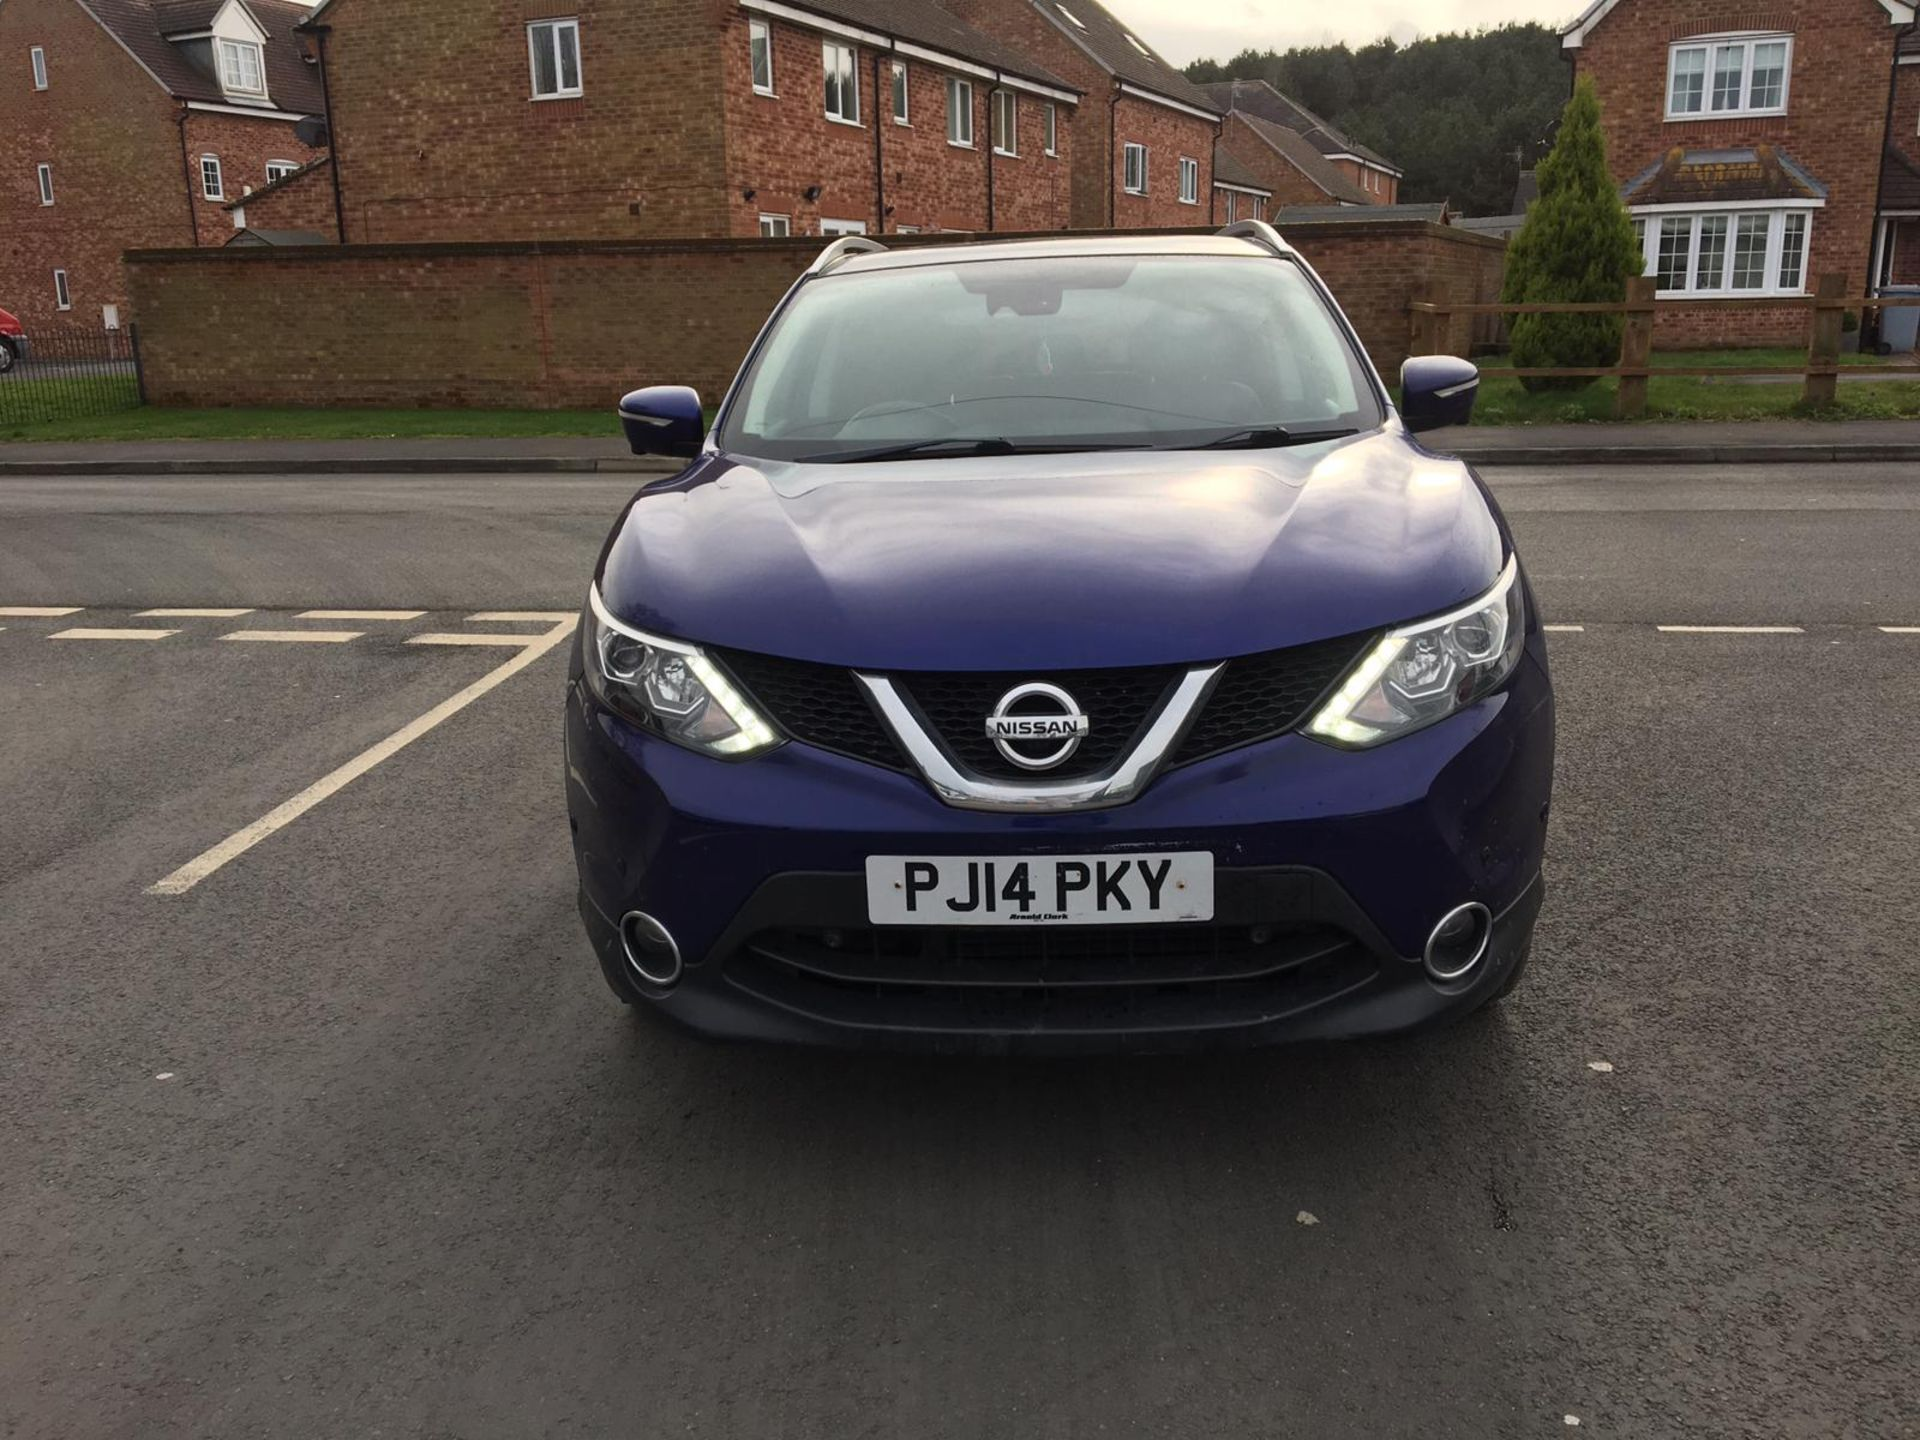 Lot 13 - 2014/14 REG NISSAN QASHQAI TEKNA DCI 1.5 DIESEL BLUE 5 DOOR HATCHBACK, SHOWING 3 FORMER KEEPERS